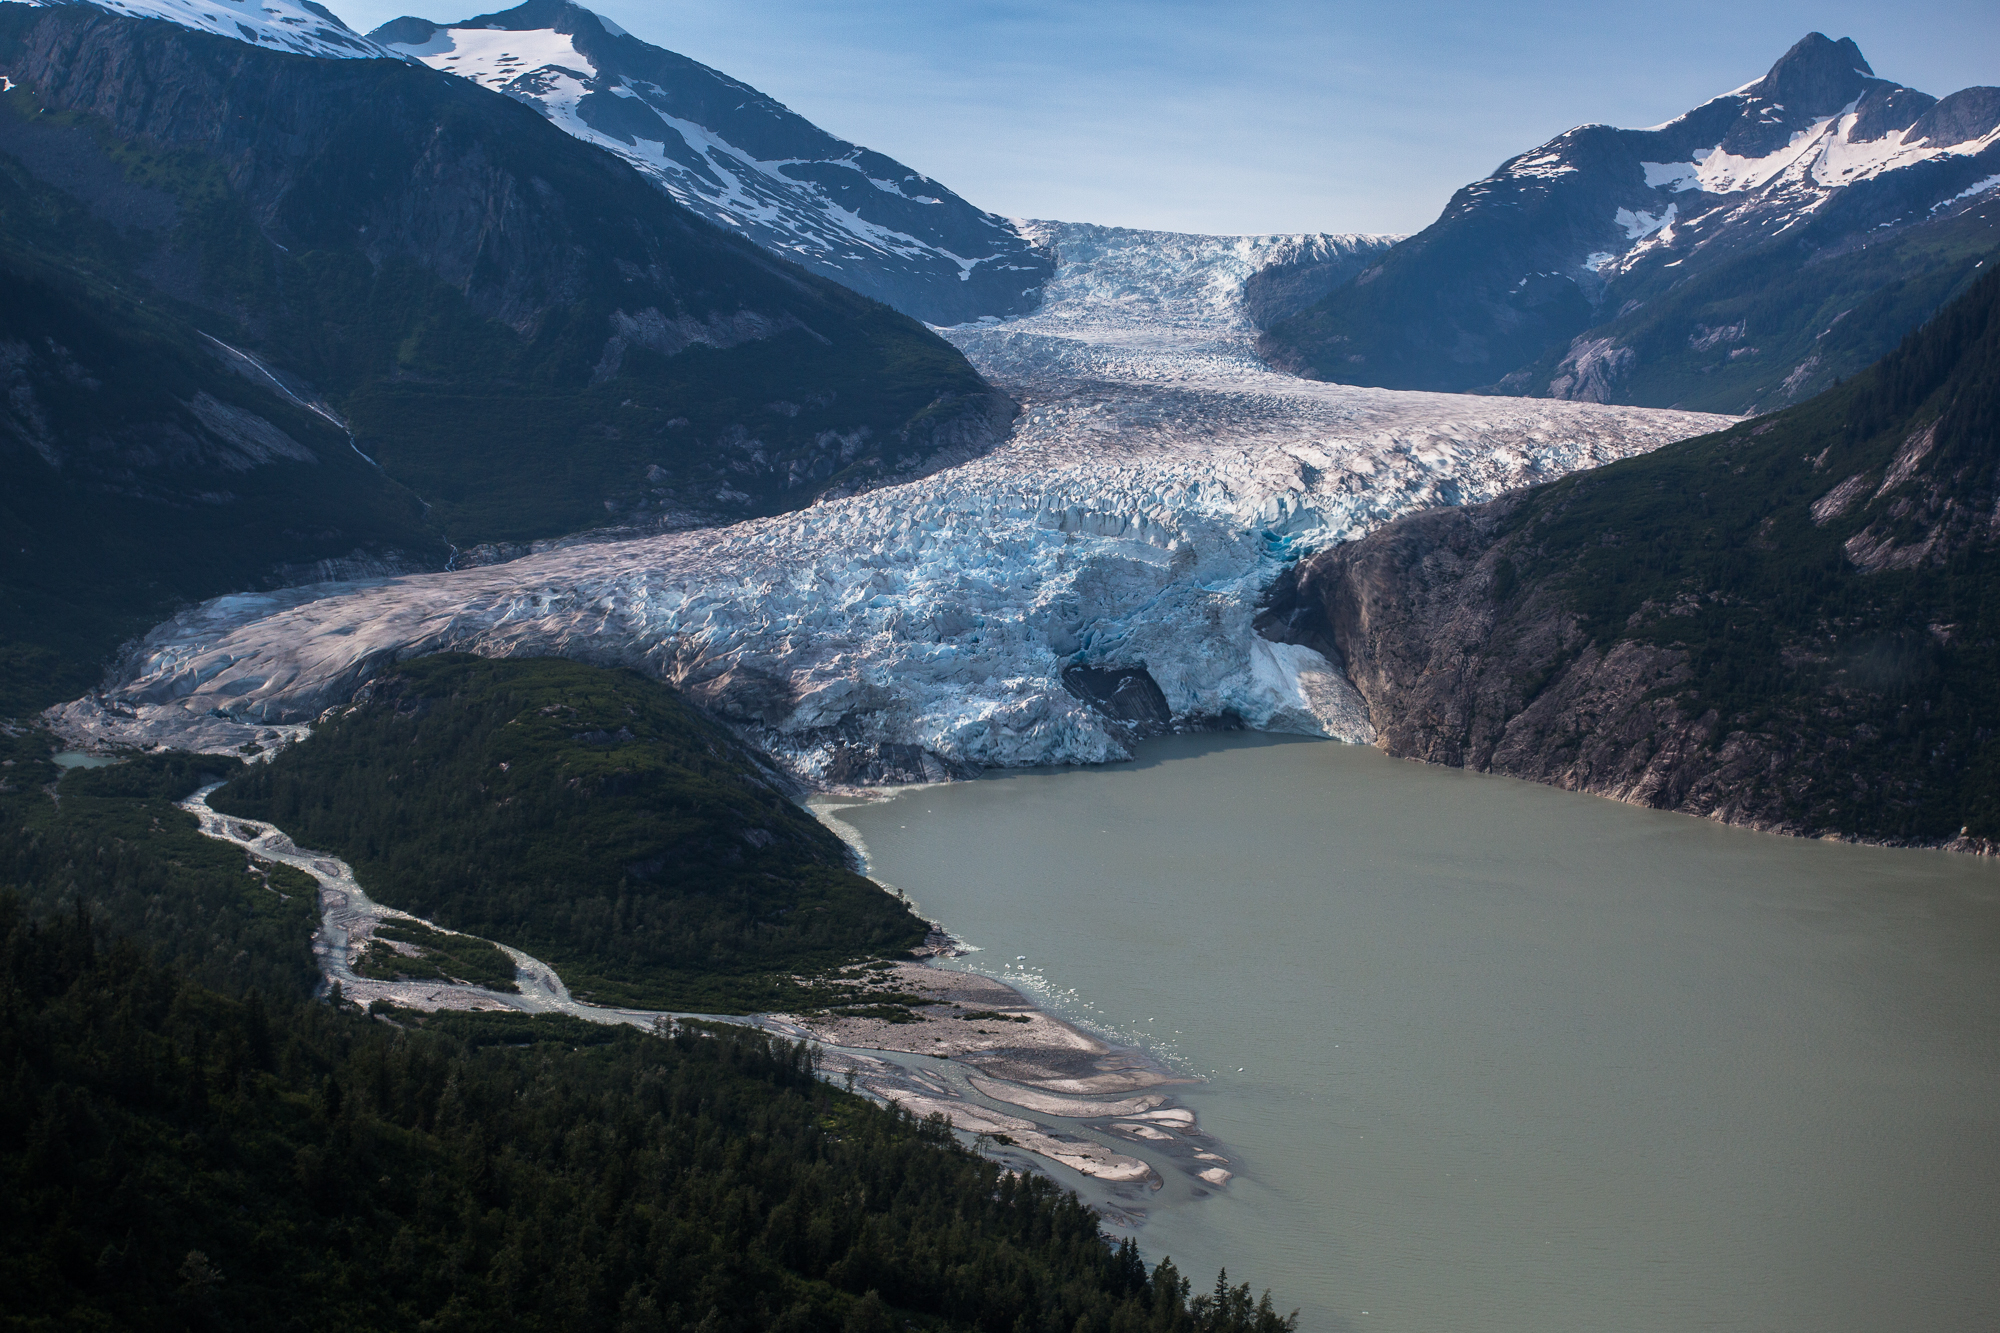 The Taku Glacier, one of the seemingly countless glaciers that surround Juneua, is seen here from the air. The Take glacier is a tidewater glacier known to be the thickest glacier in the world at nearly 5,000 feet thick (photo: Chad Shmukler).